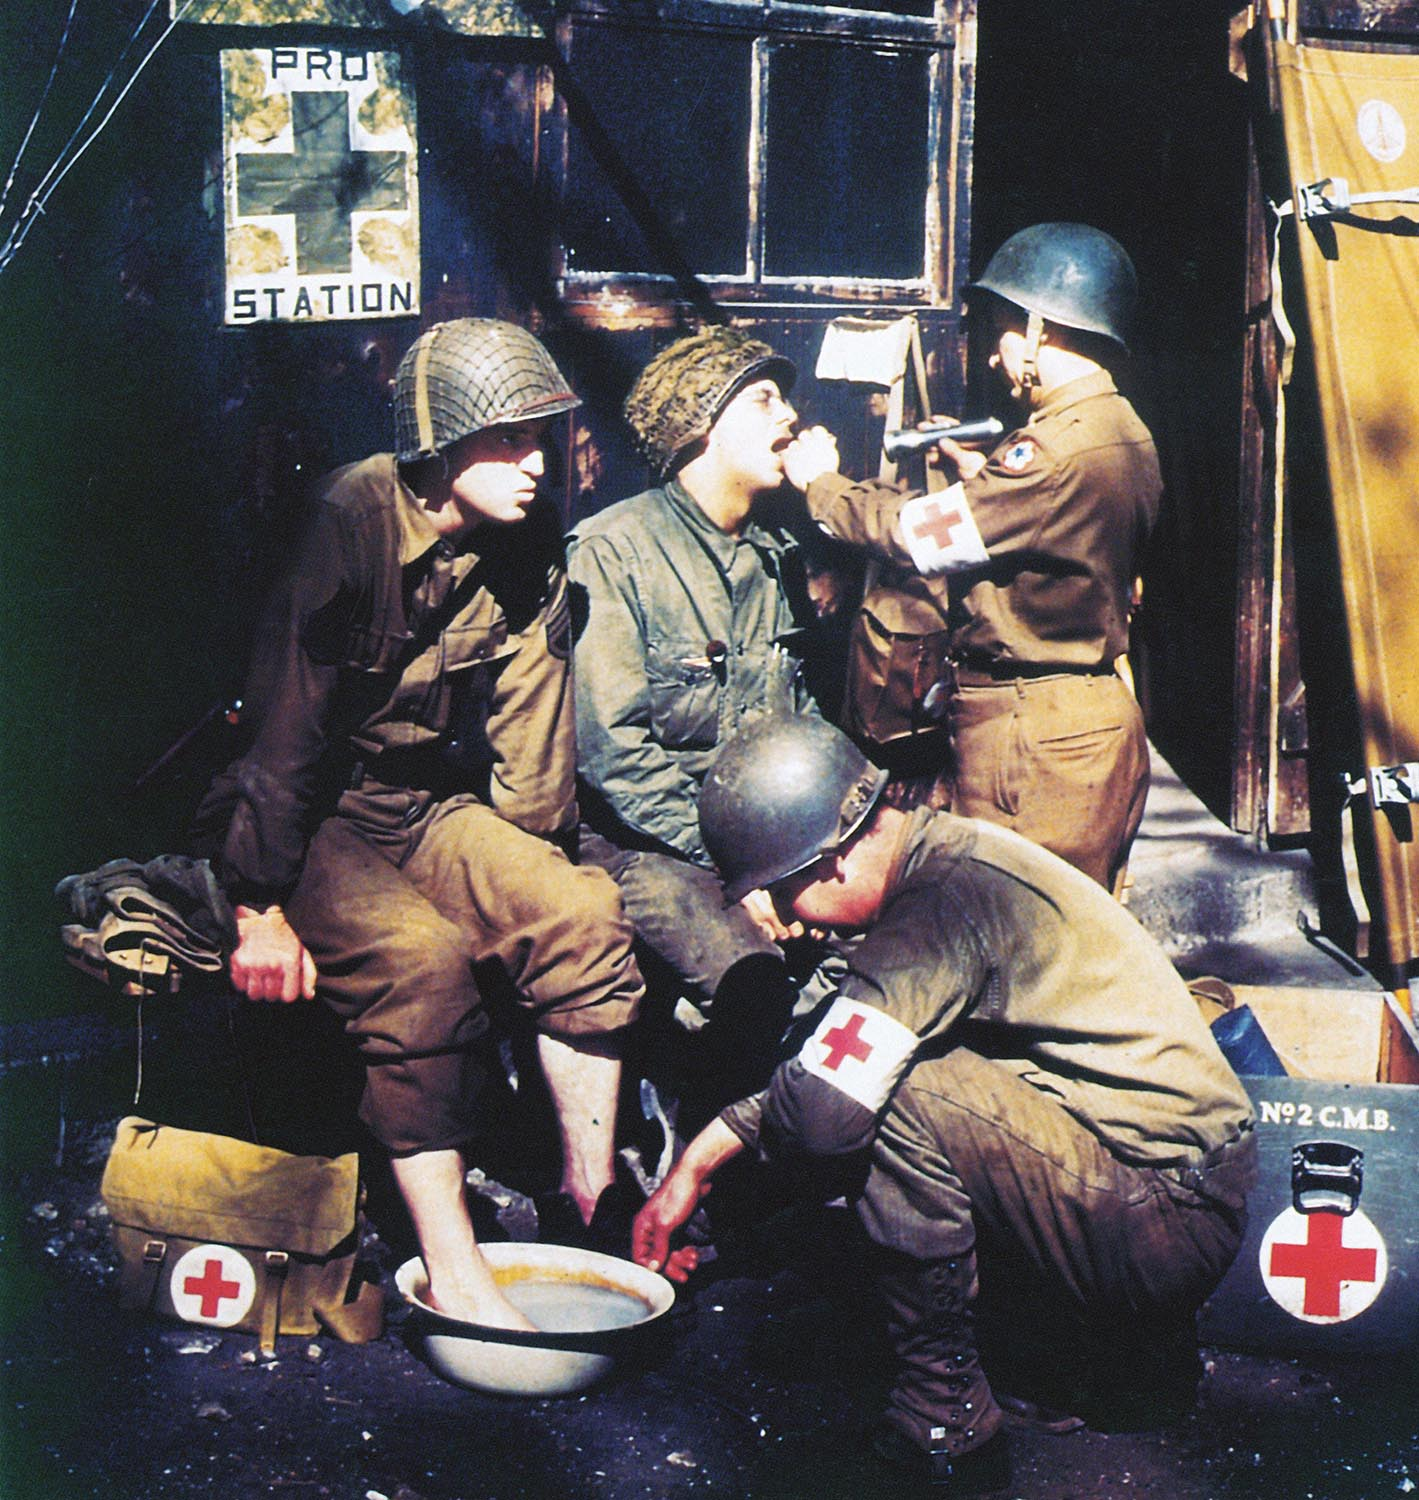 U.S. Army medics treating soldiers in England before the invasion of Normandy, 1944.